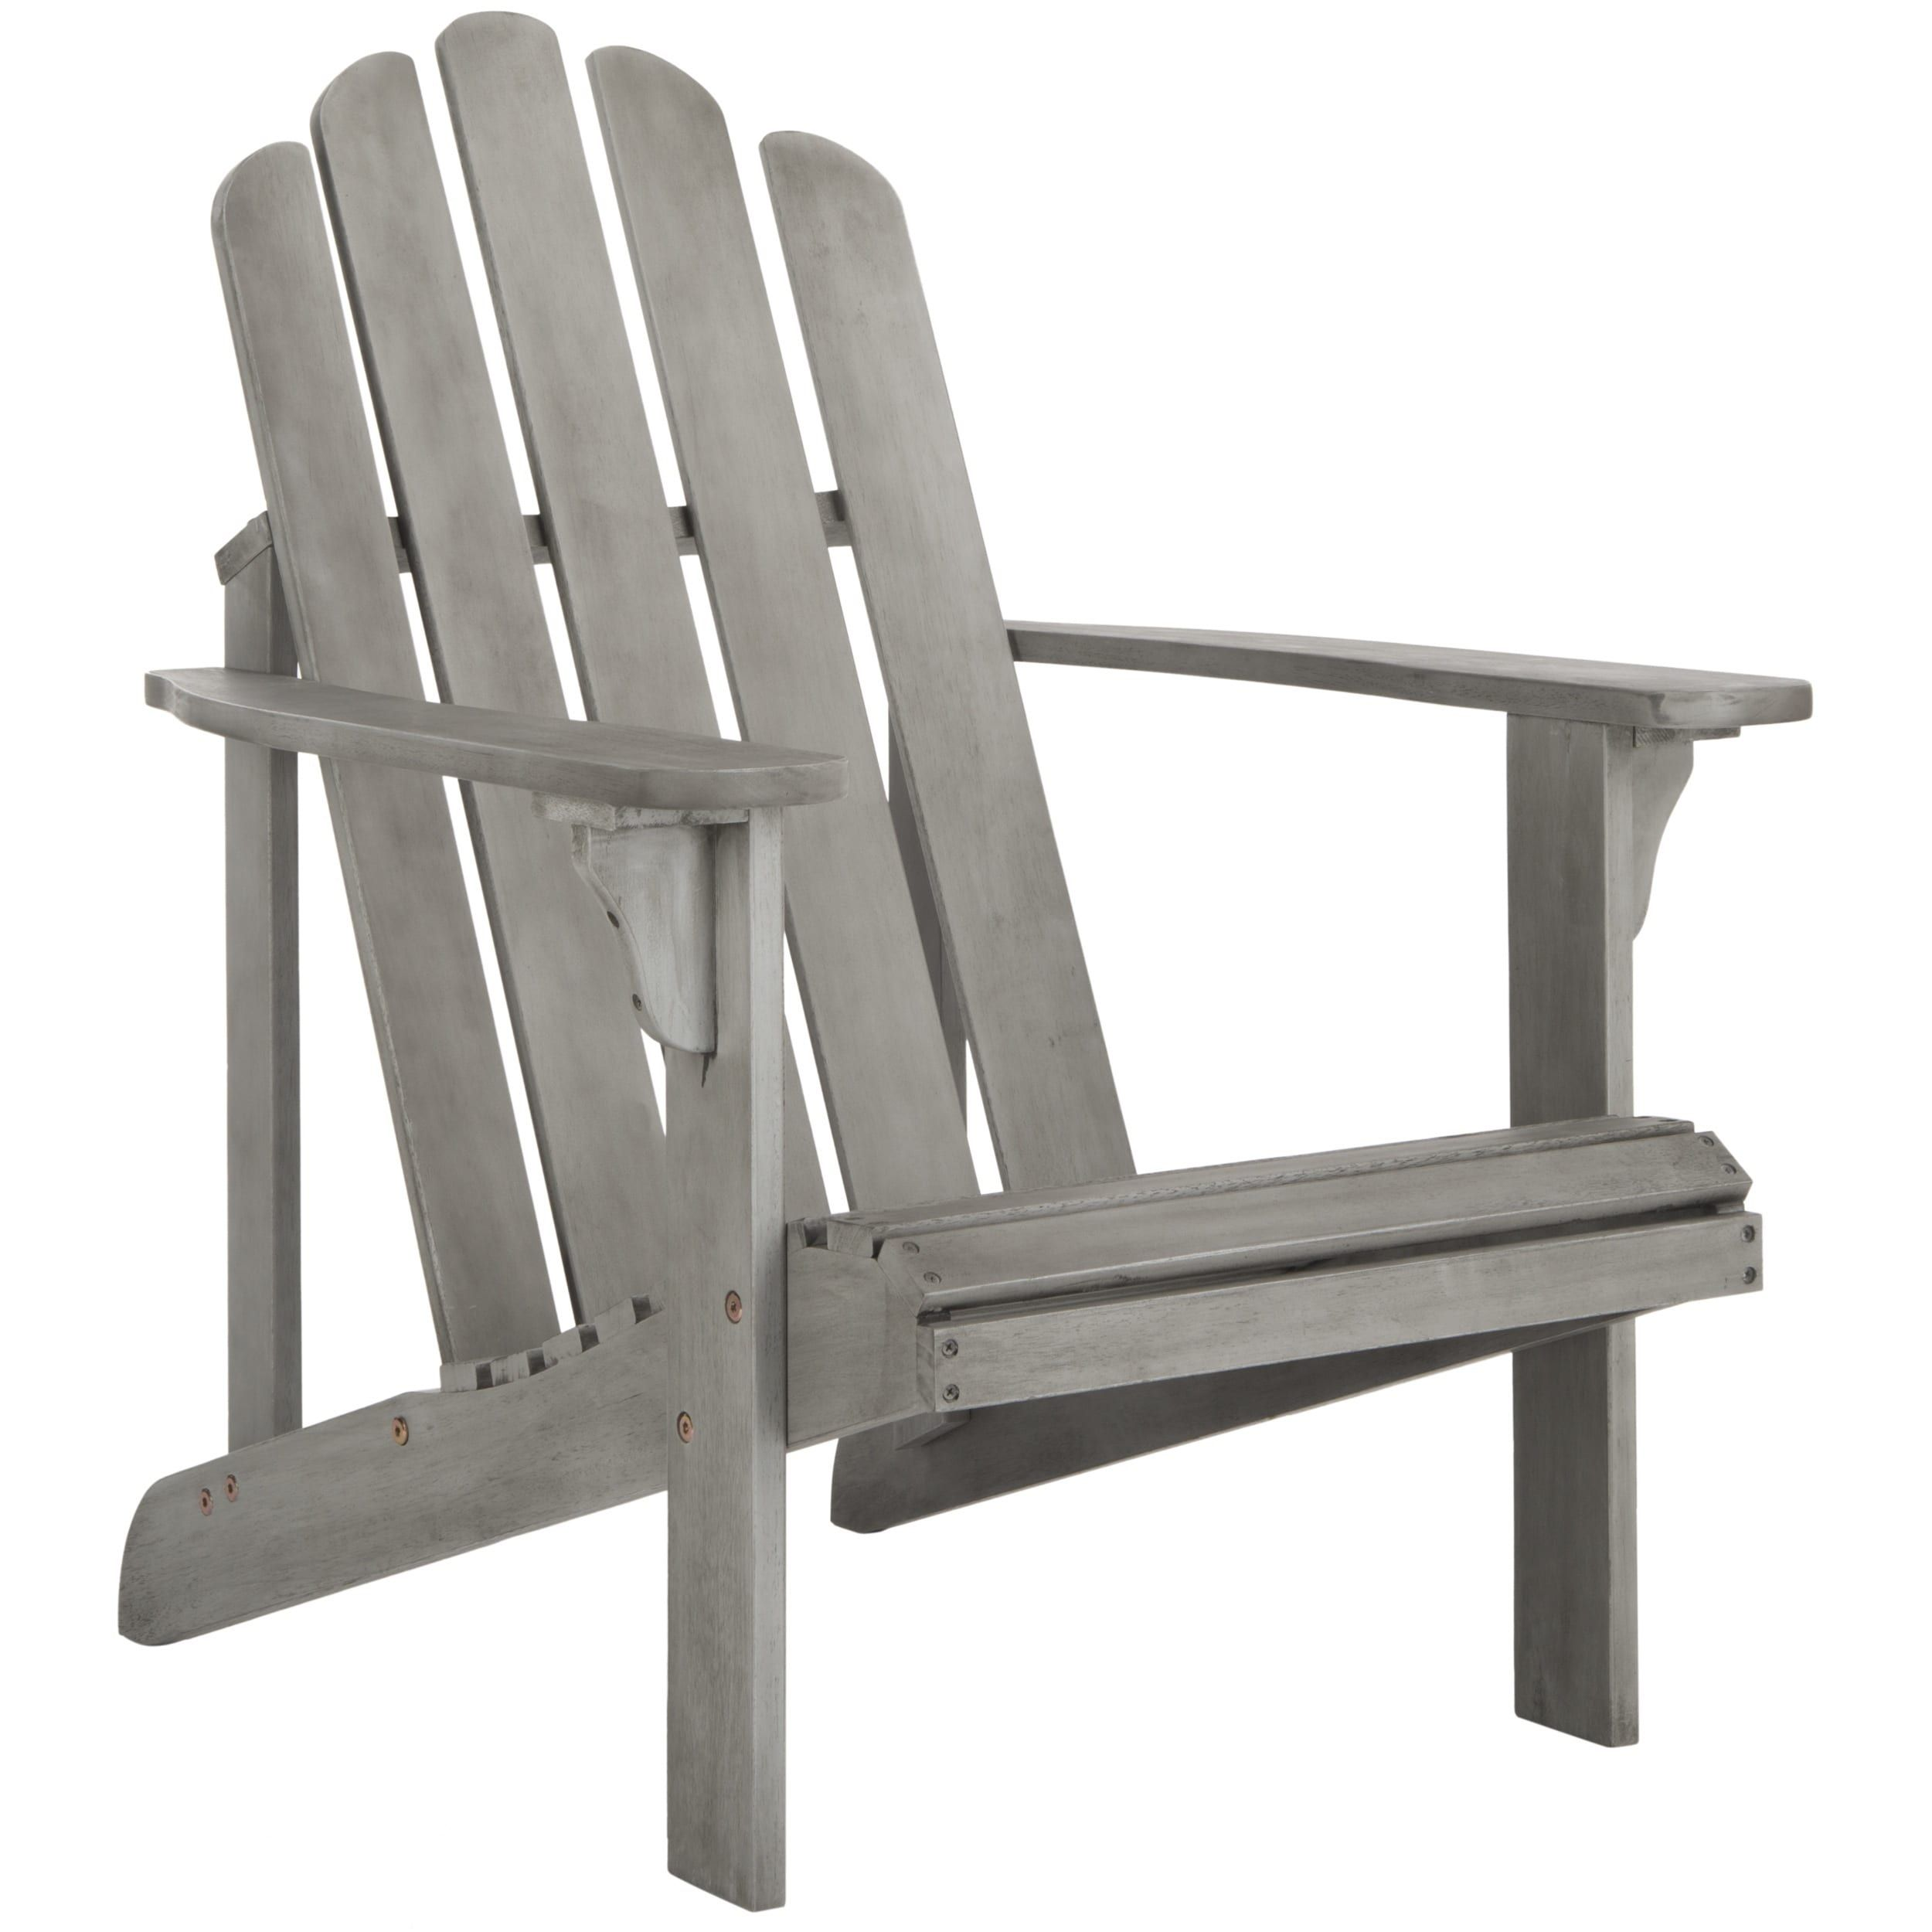 Safavieh Topher Grey Wash Adirondack Chair (PAT7027B), Patio Furniture  (Rattan)